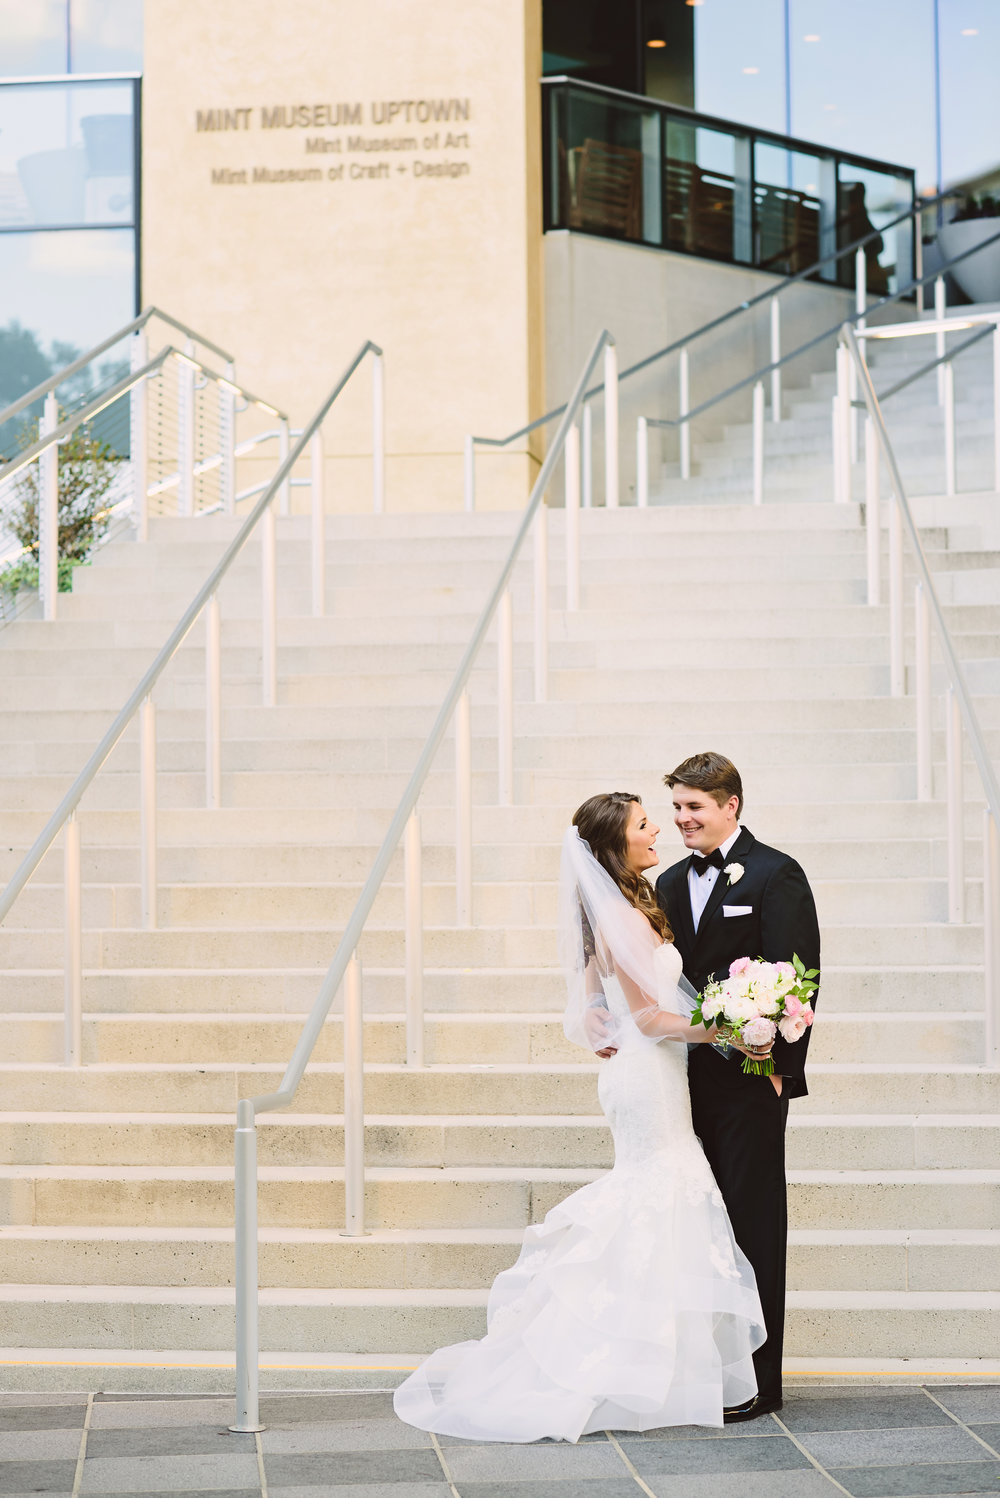 Monique Lhuillier wedding dress, Black tie wedding, Lace wedding dress, Wedding hair style, Veil, Uptown Charlotte Wedding venue, Mint Museum Uptown wedding in Charlotte, North Carolina by The Graceful Host